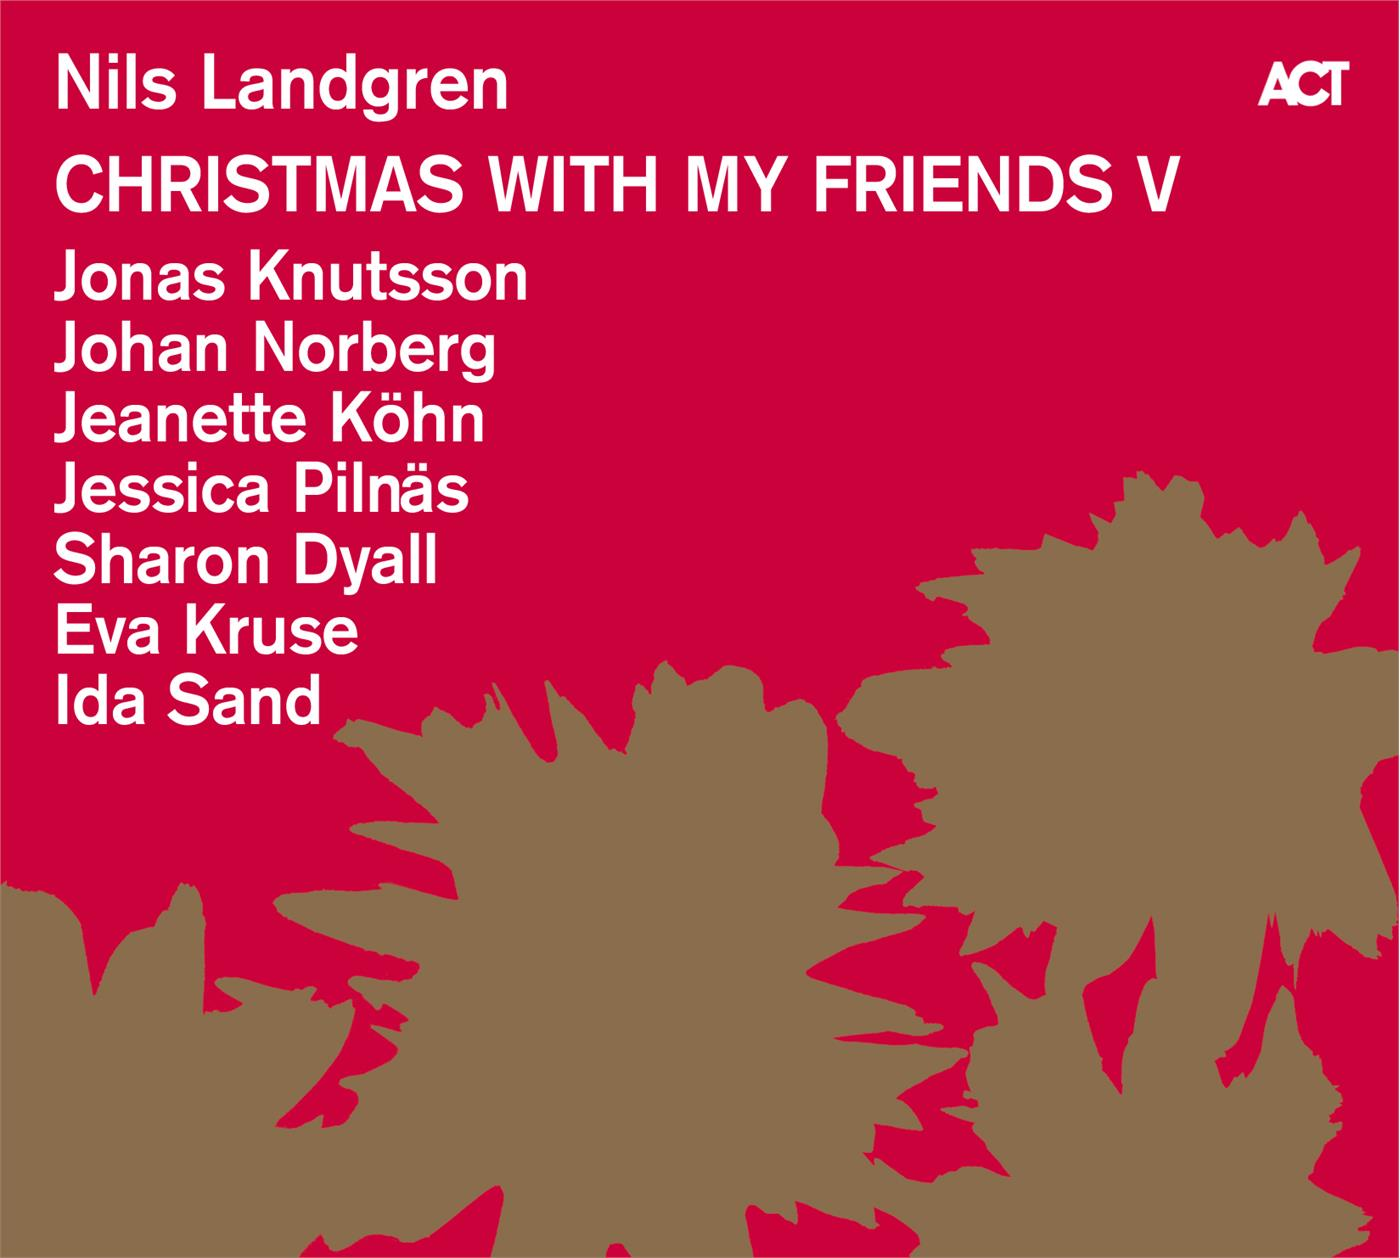 ACT98301 ACT  Nils Landgren Christmas With My Friends V (LP)